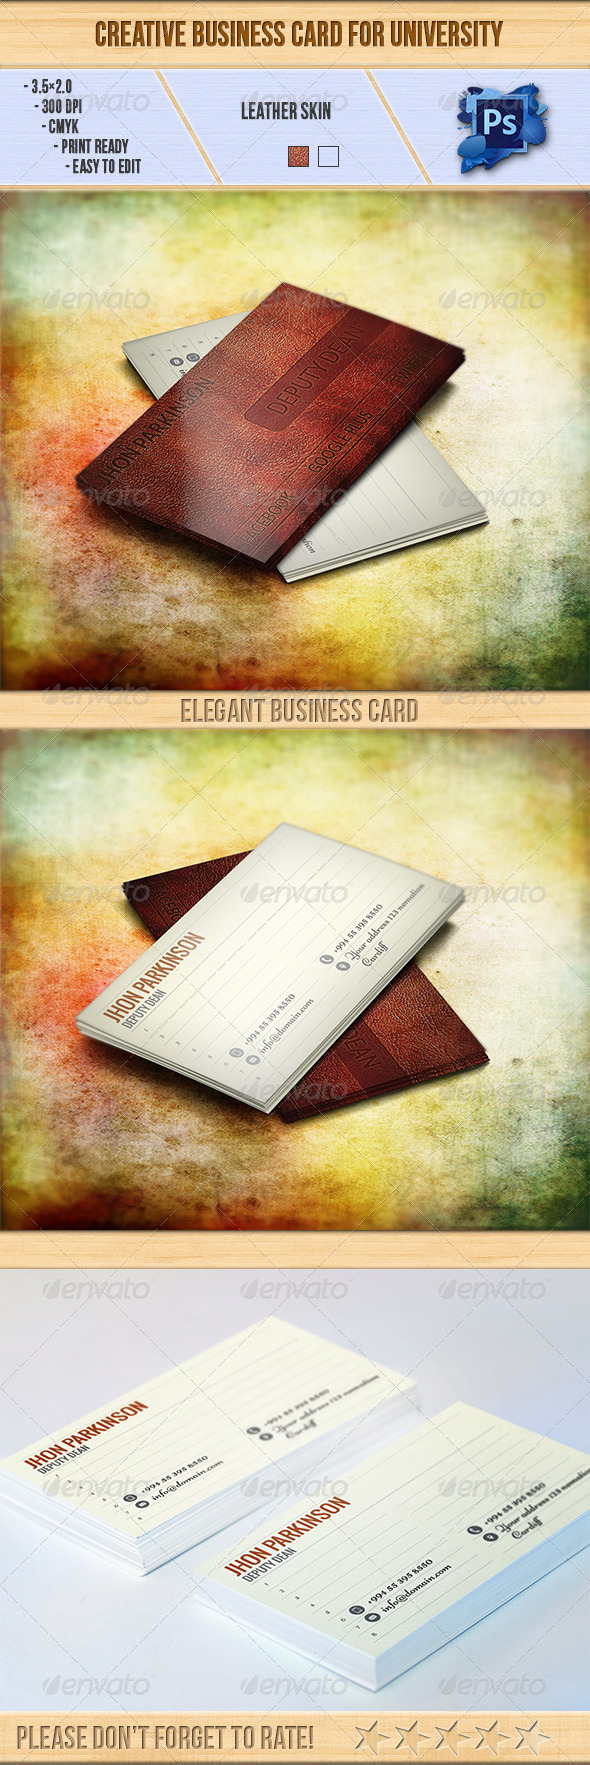 Creative Business Card for University - Creative Business Cards